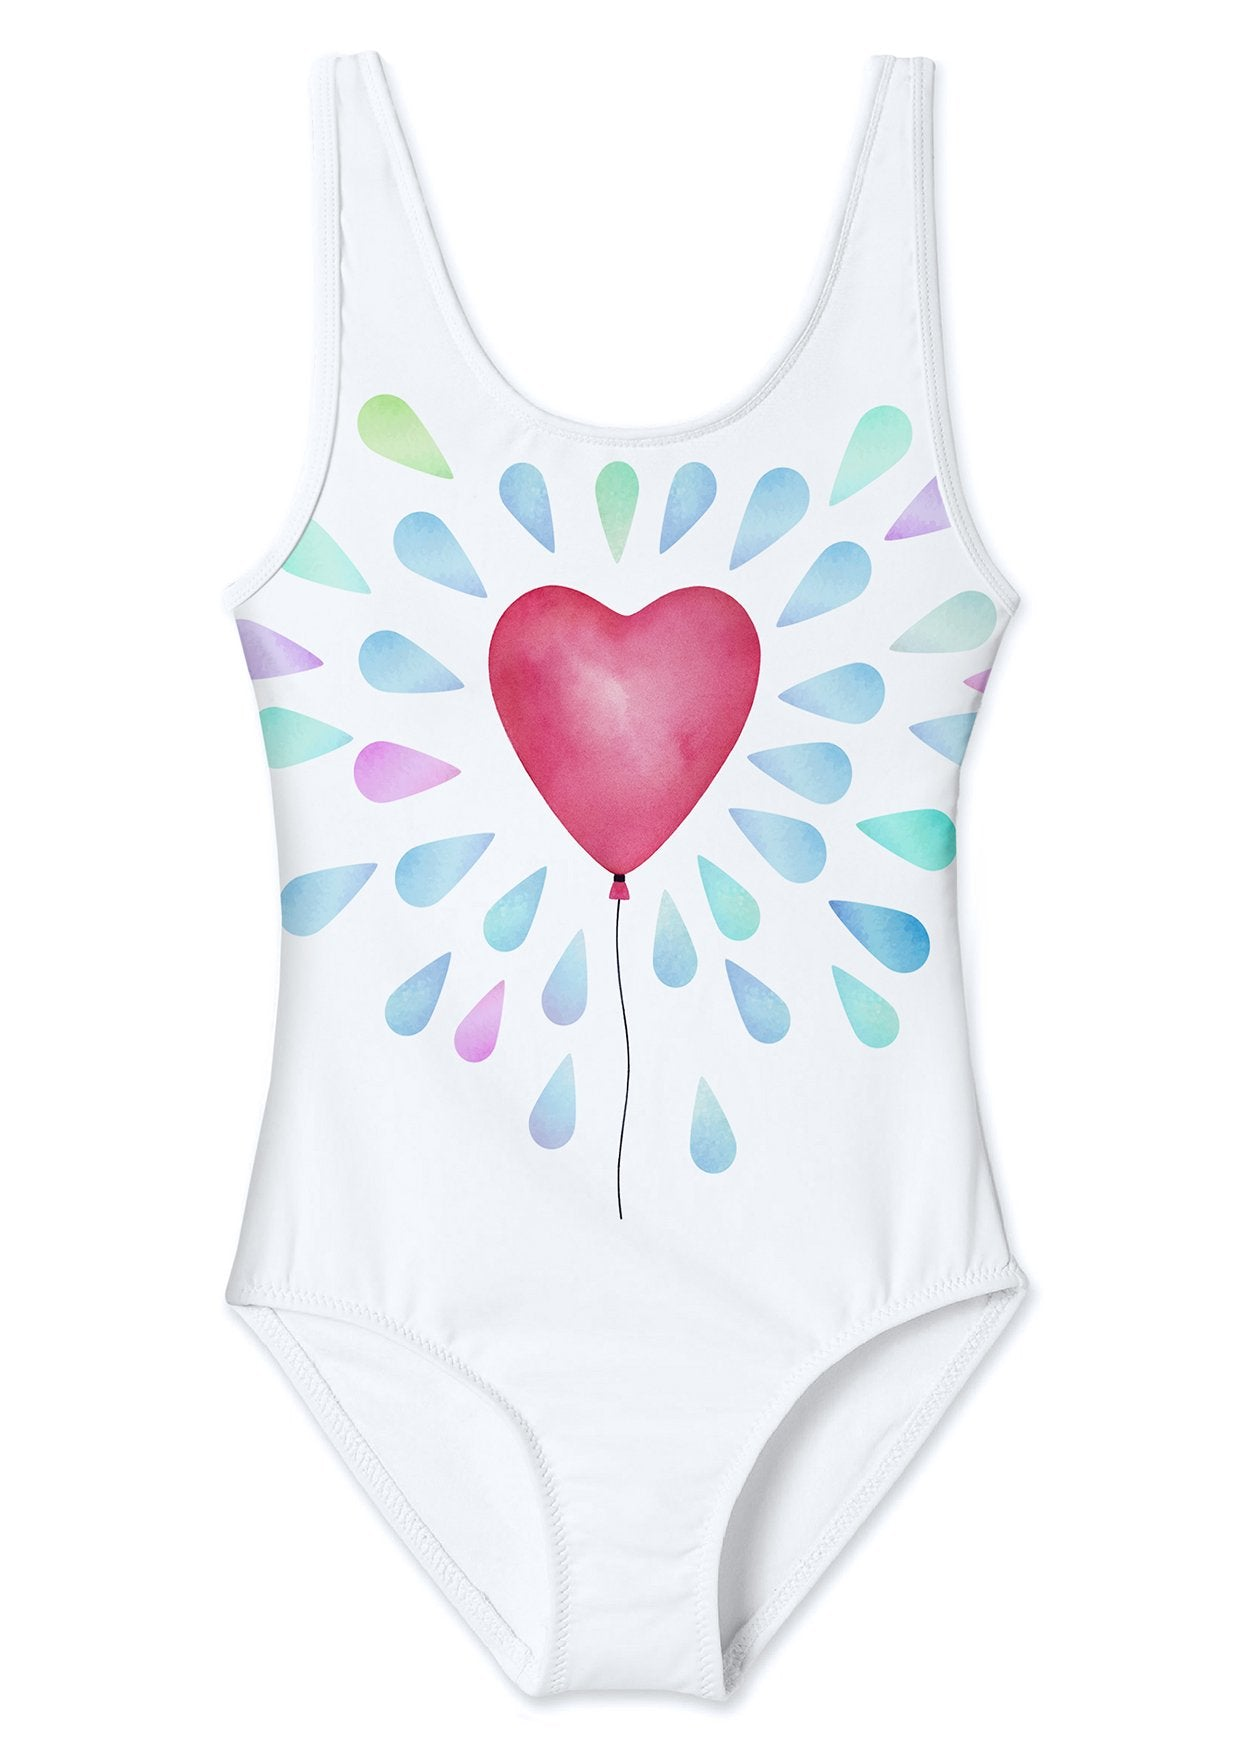 White Tank Swimsuit for Girls with Heart Balloon Print